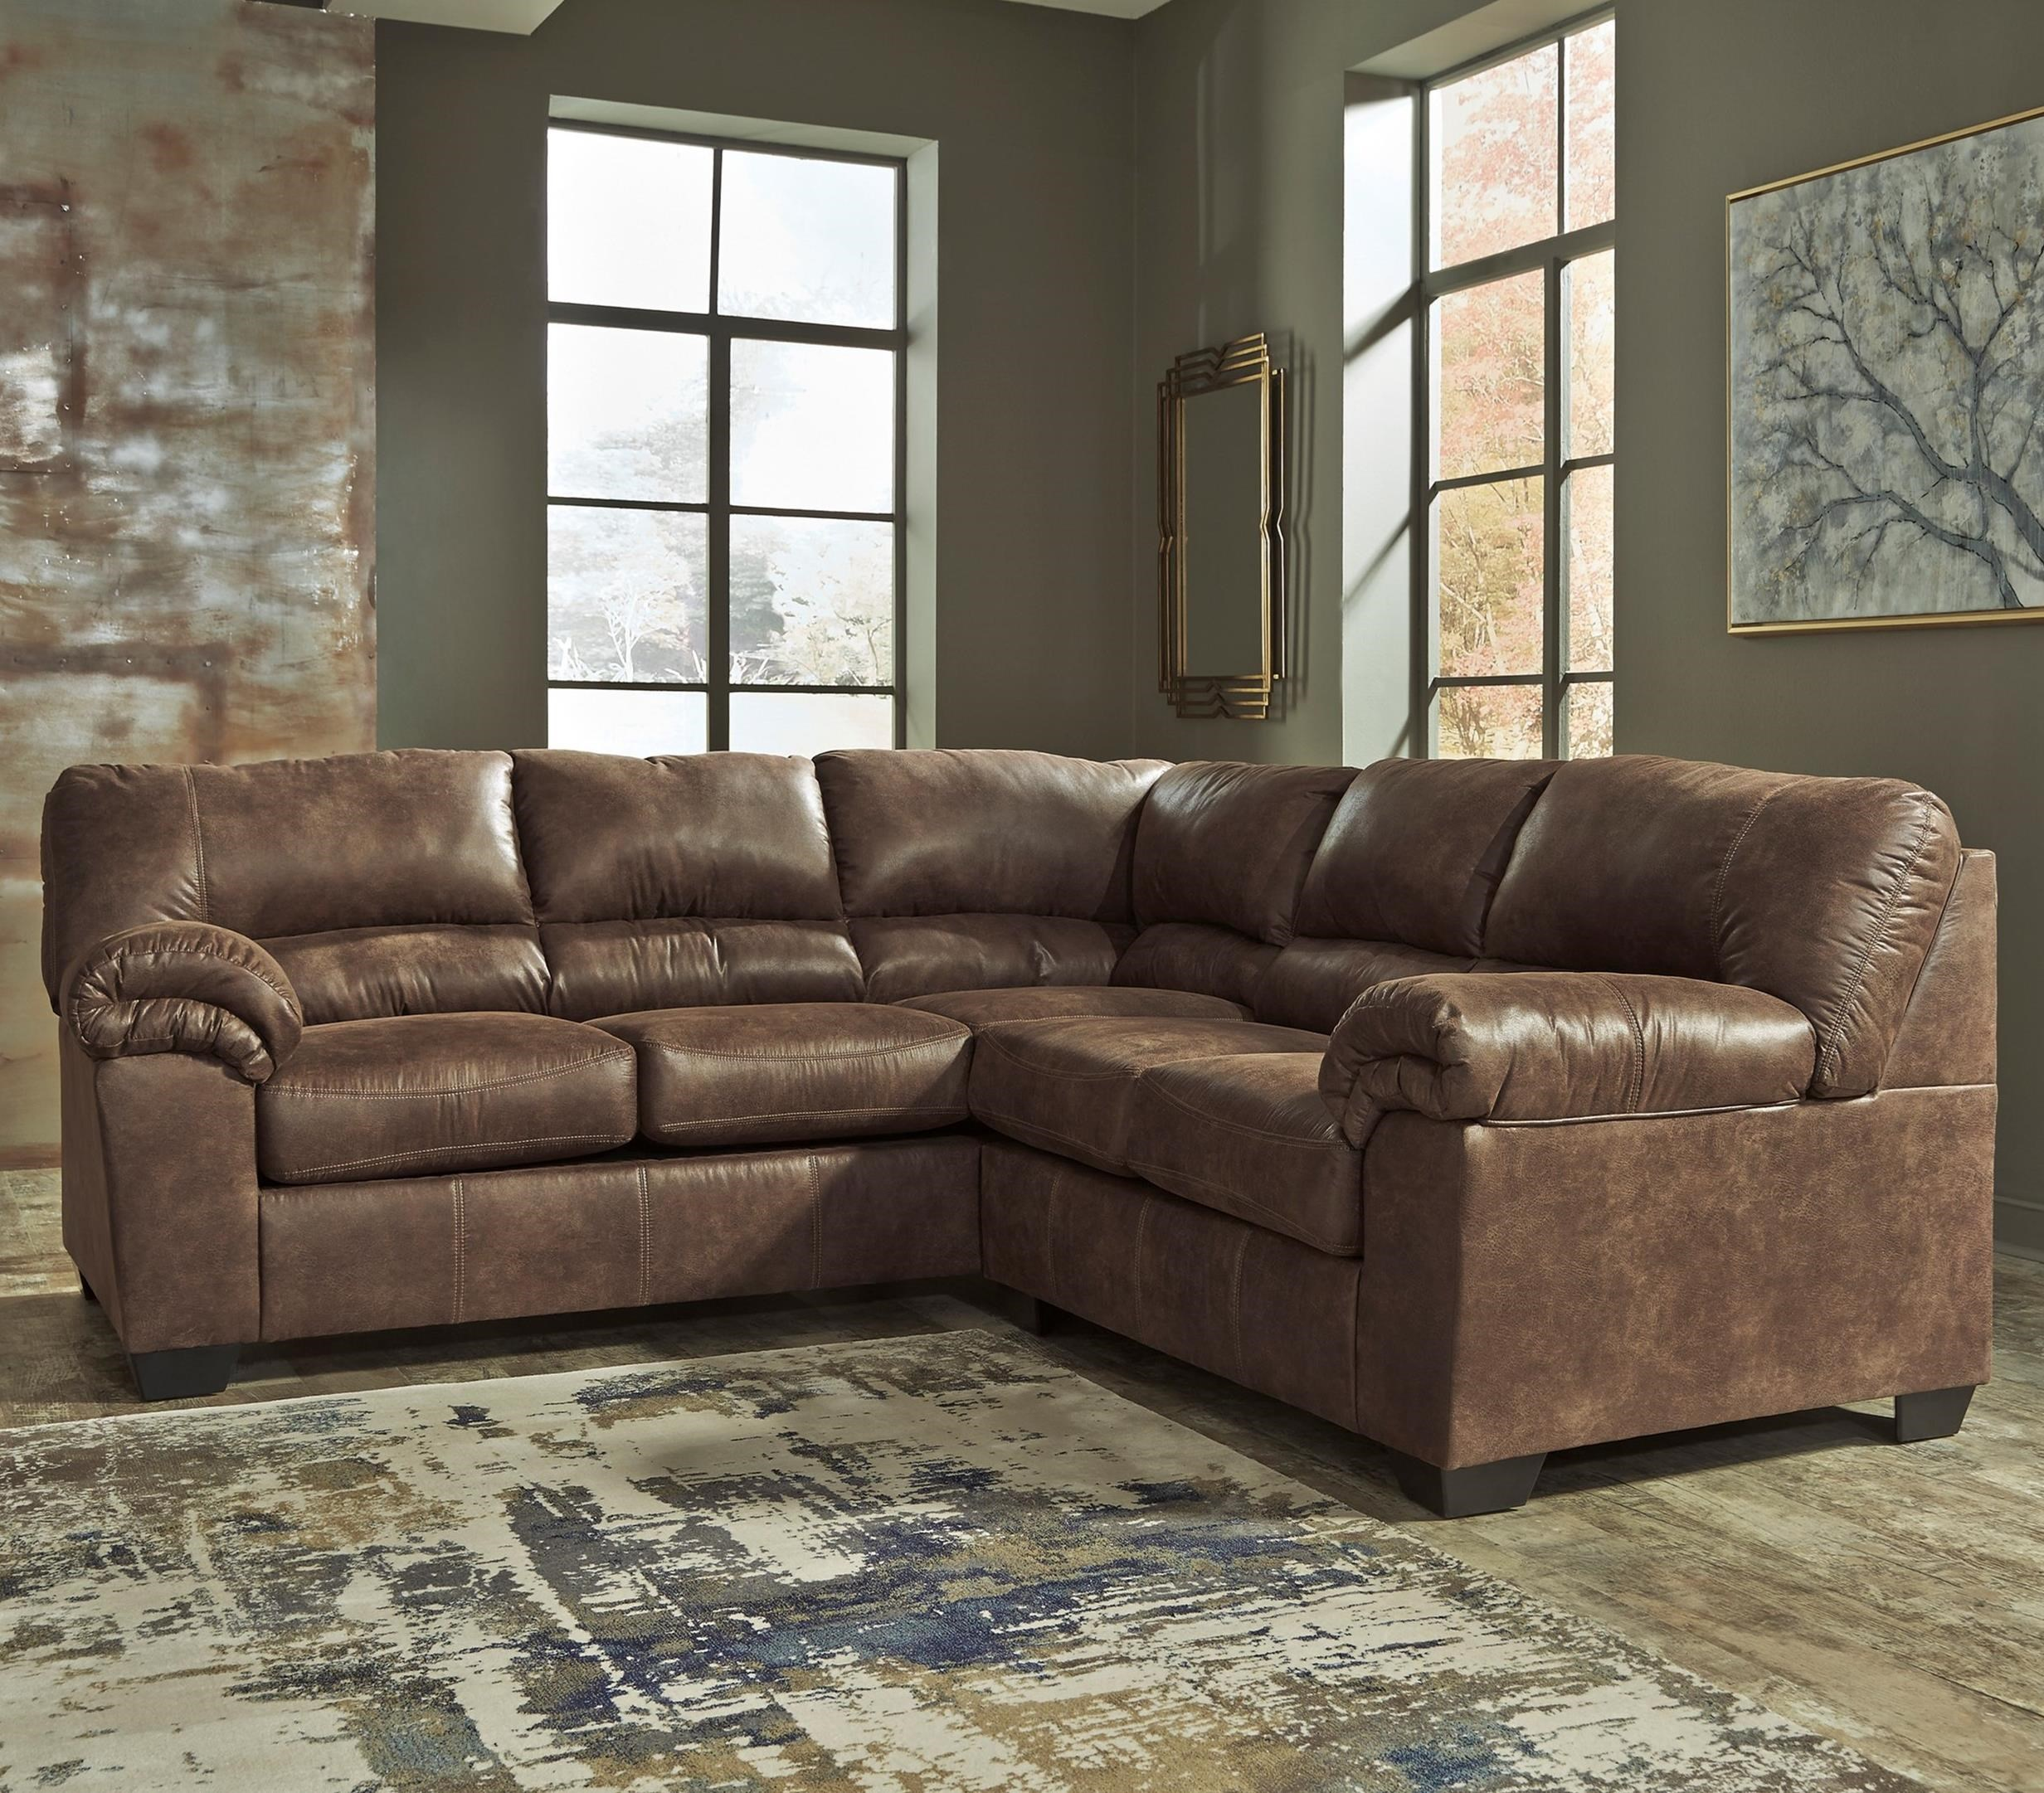 Bladen Two-Piece Sectional by Signature Design by Ashley at Northeast Factory Direct